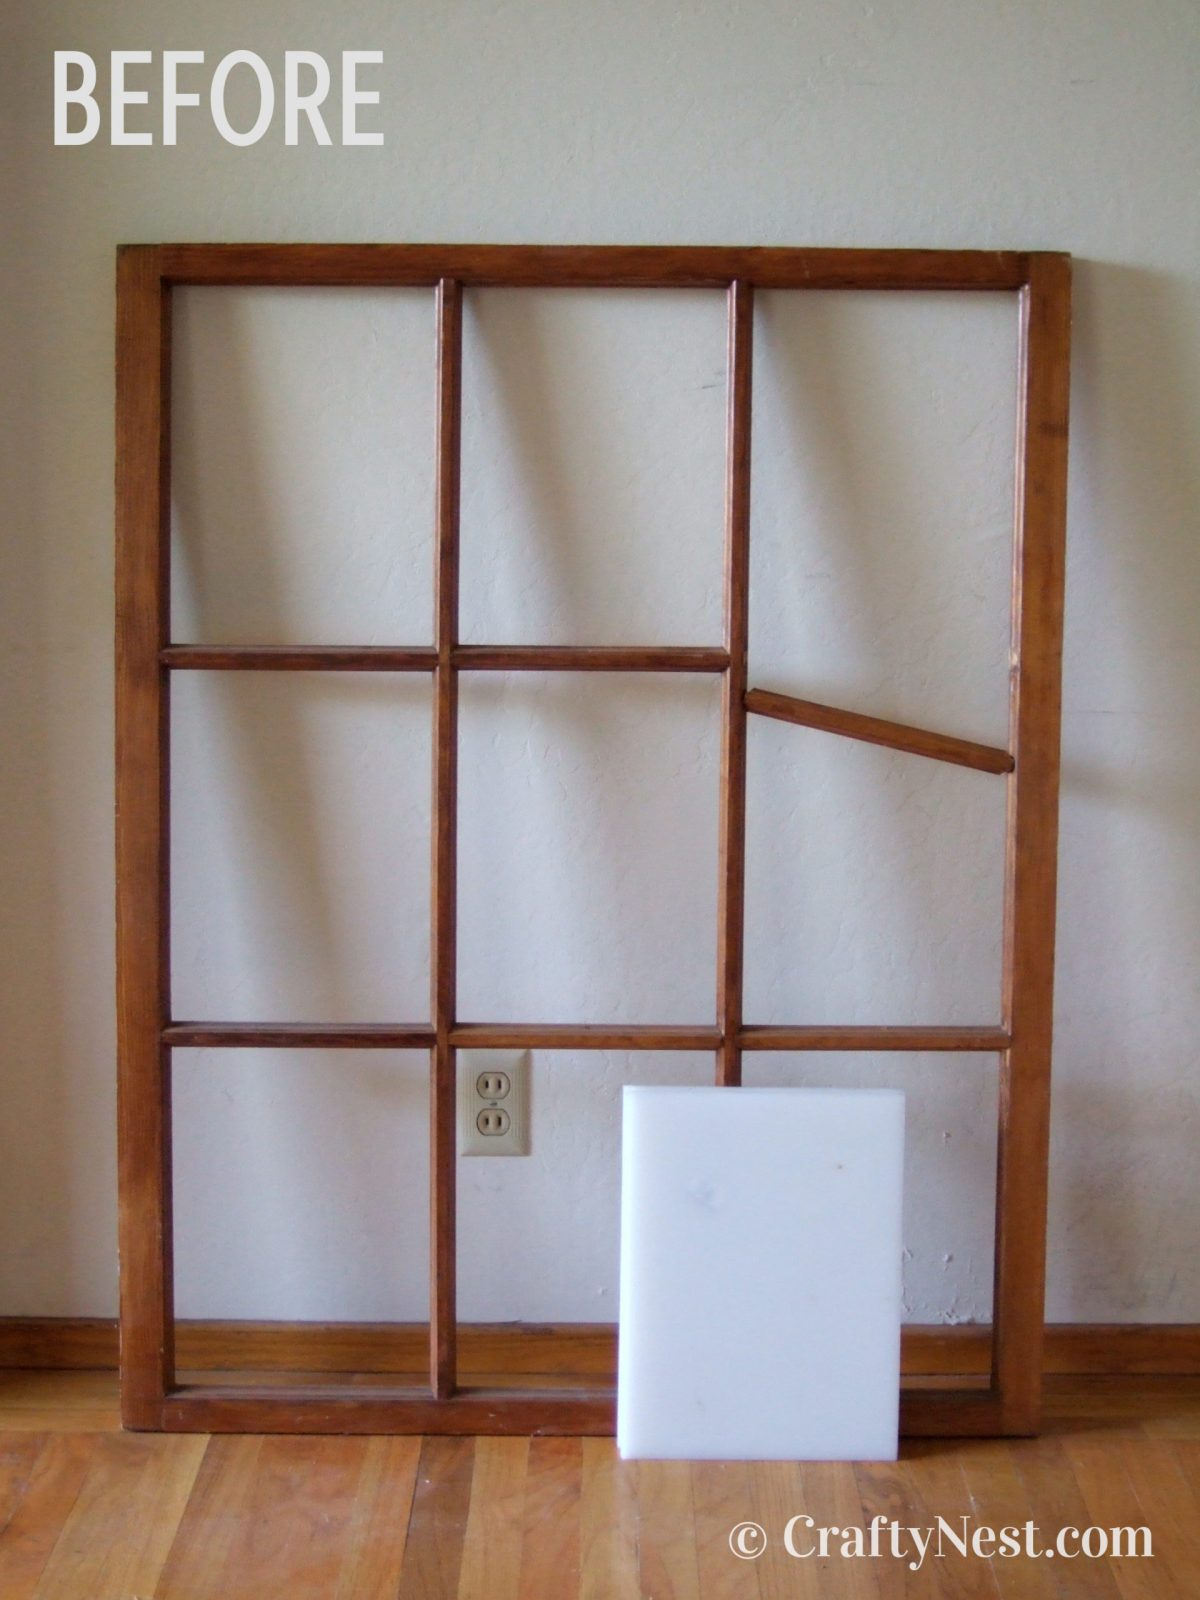 The salvaged window, before photo